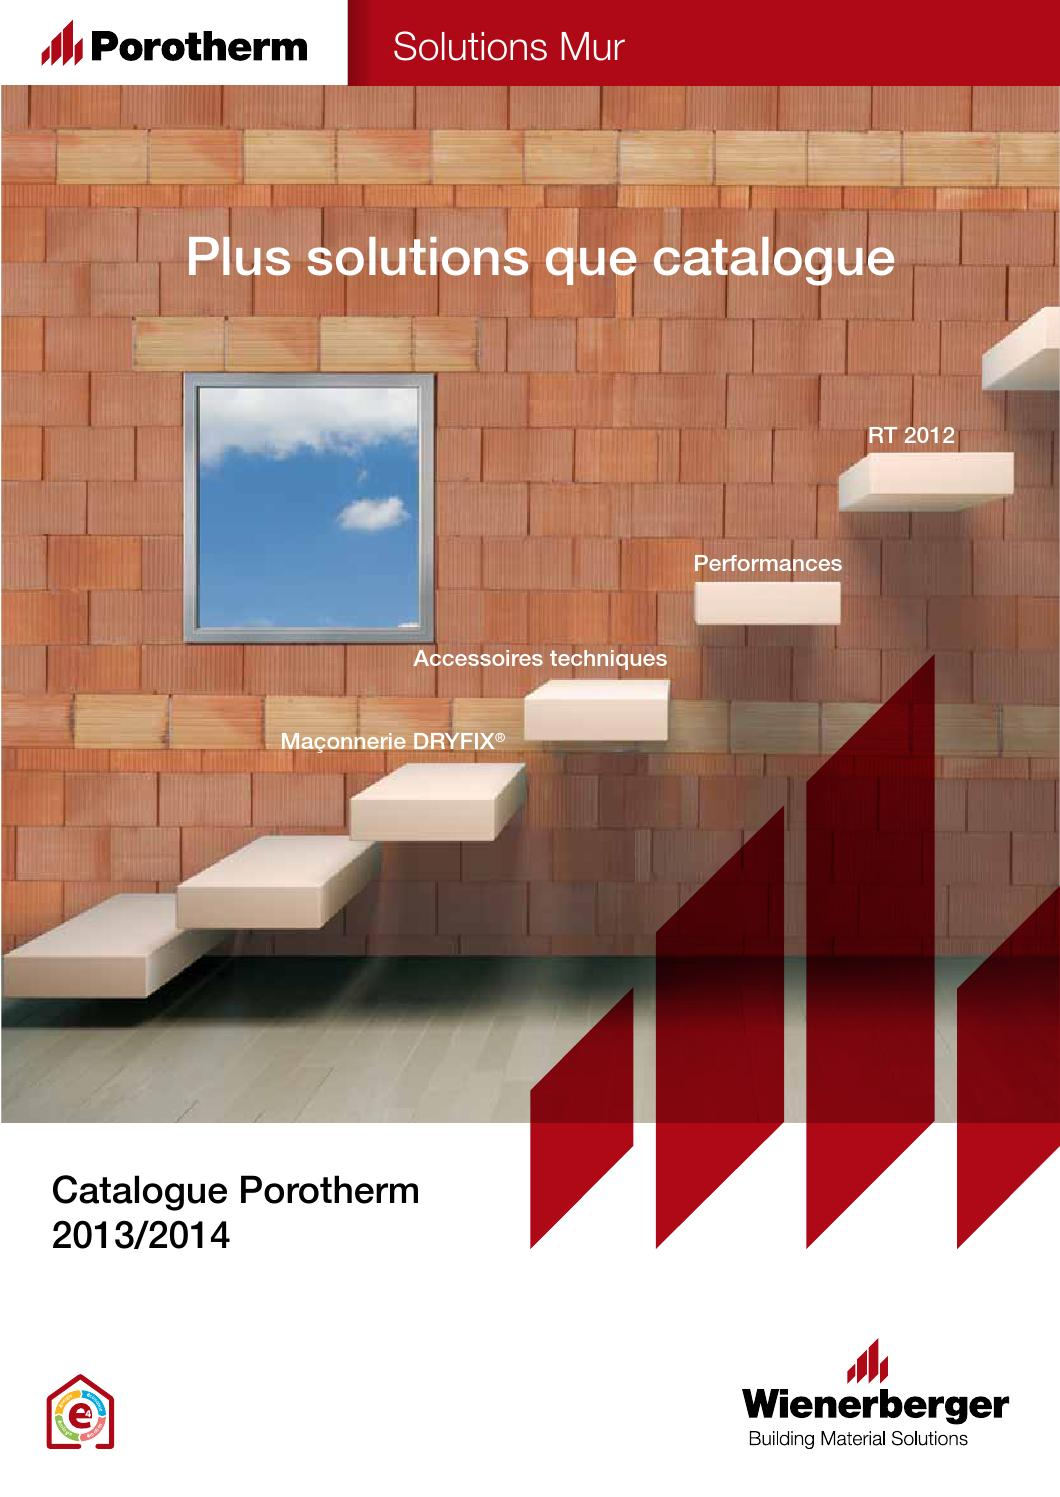 Brique Monomur Rt 2012 Catalogue Solutions Mur Porotherm 2013 2014 By